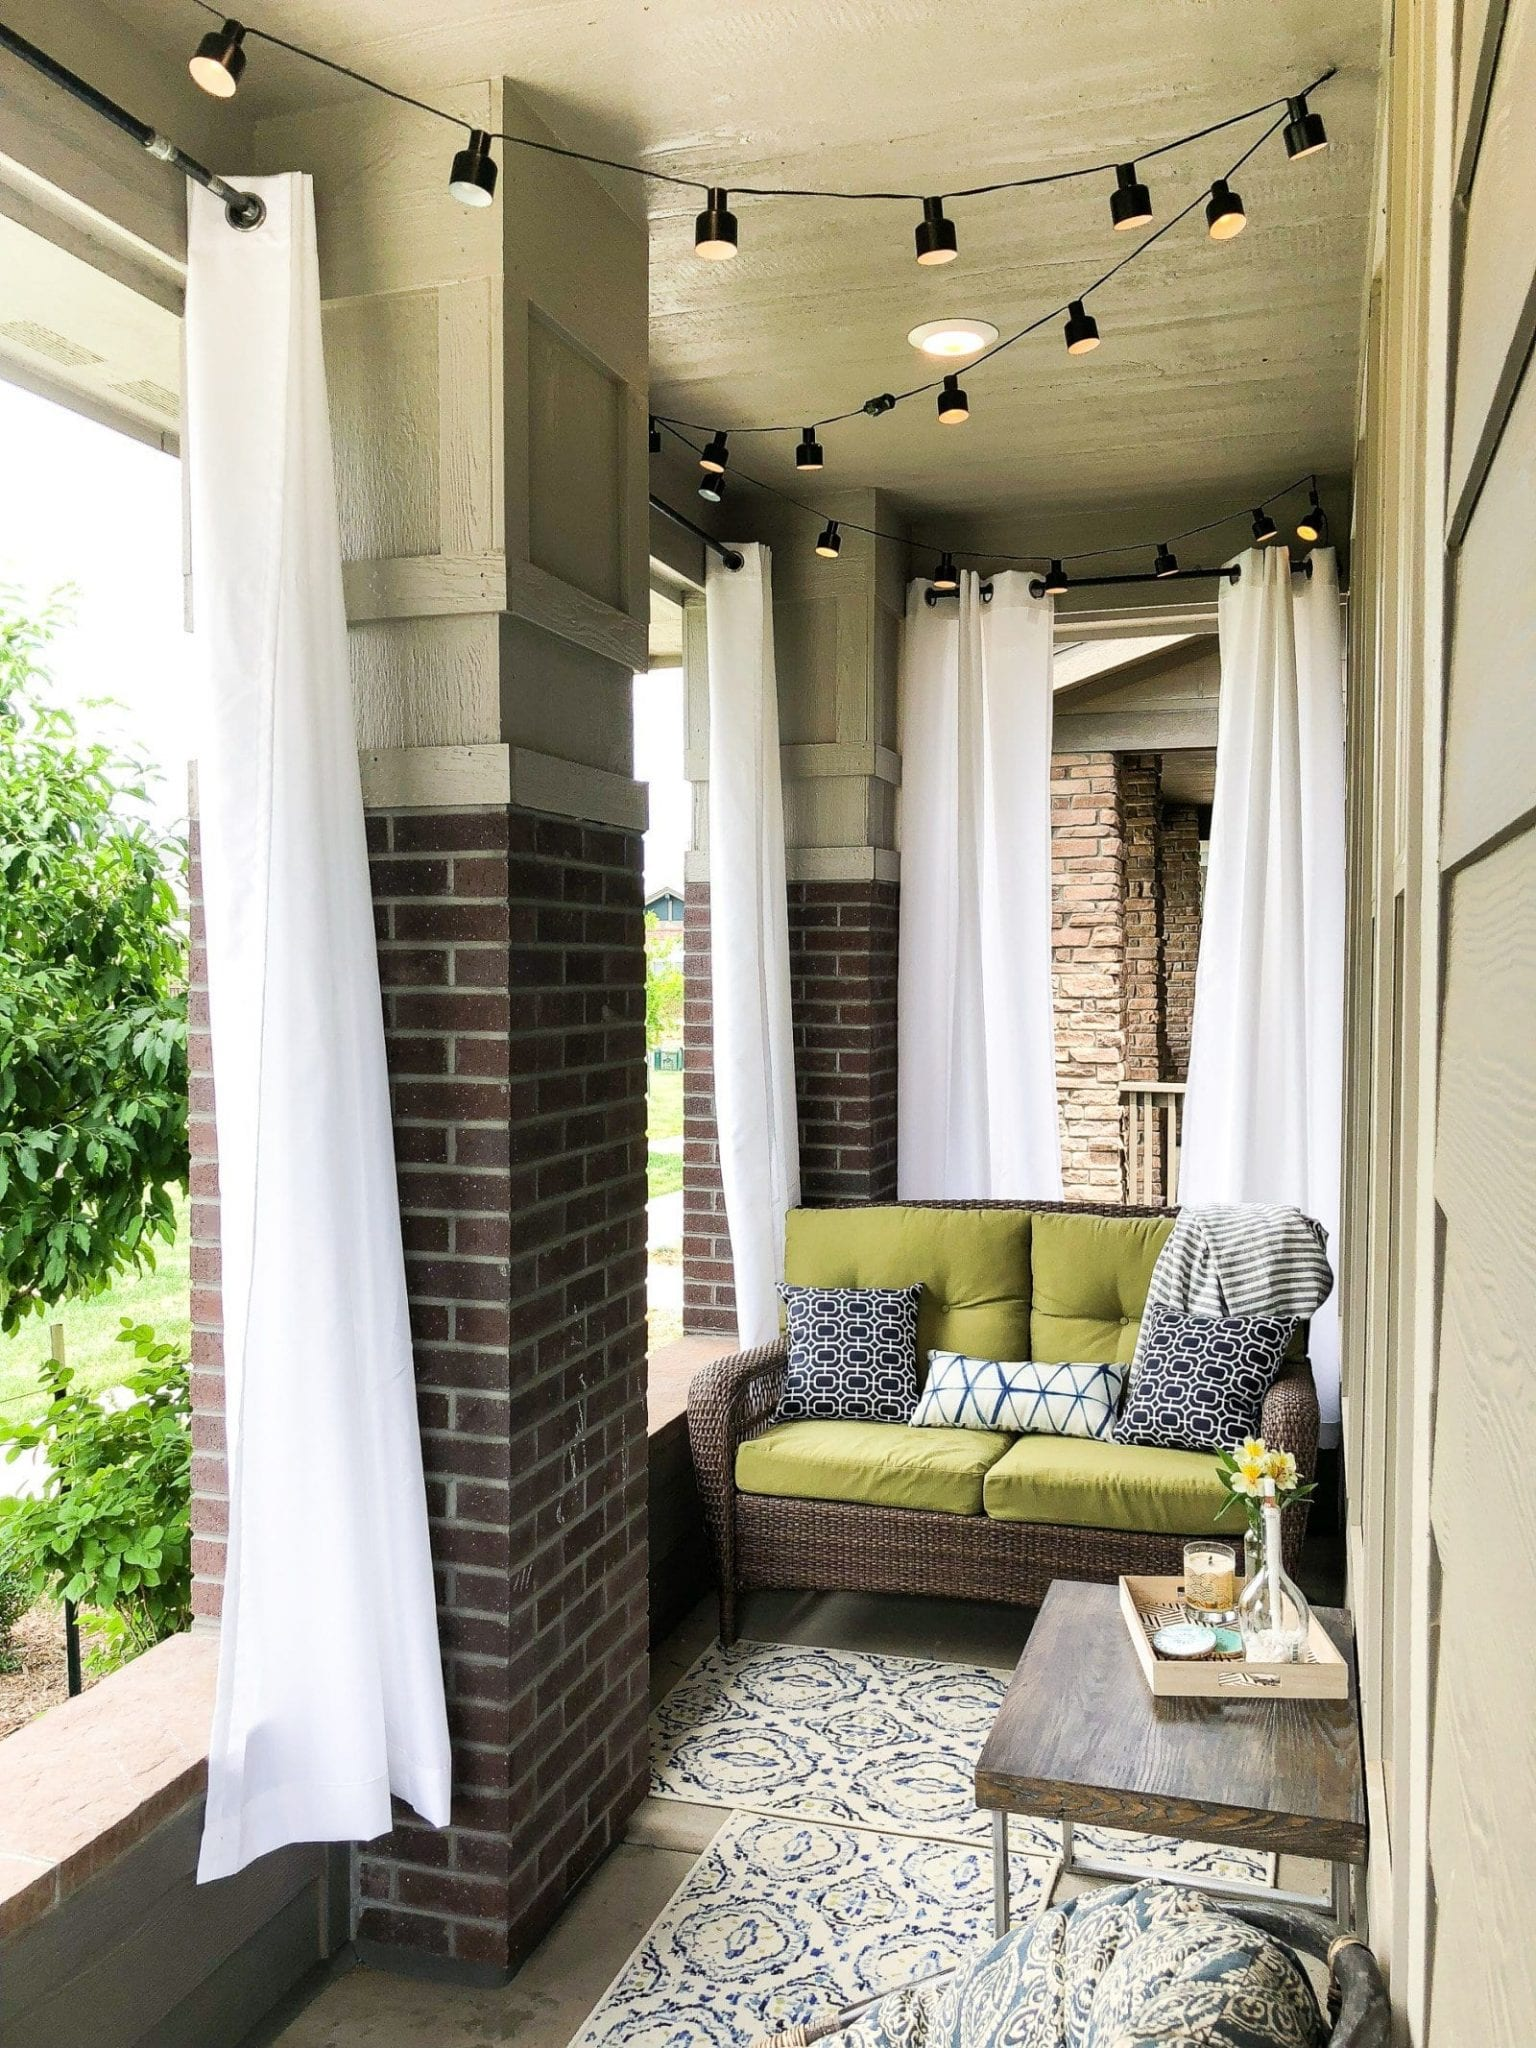 SO COZY. Check out this front porch refresh to get small front porch decorating ideas on a budget | never skip brunch by cara newhart #home #patio #neverskipbrunch